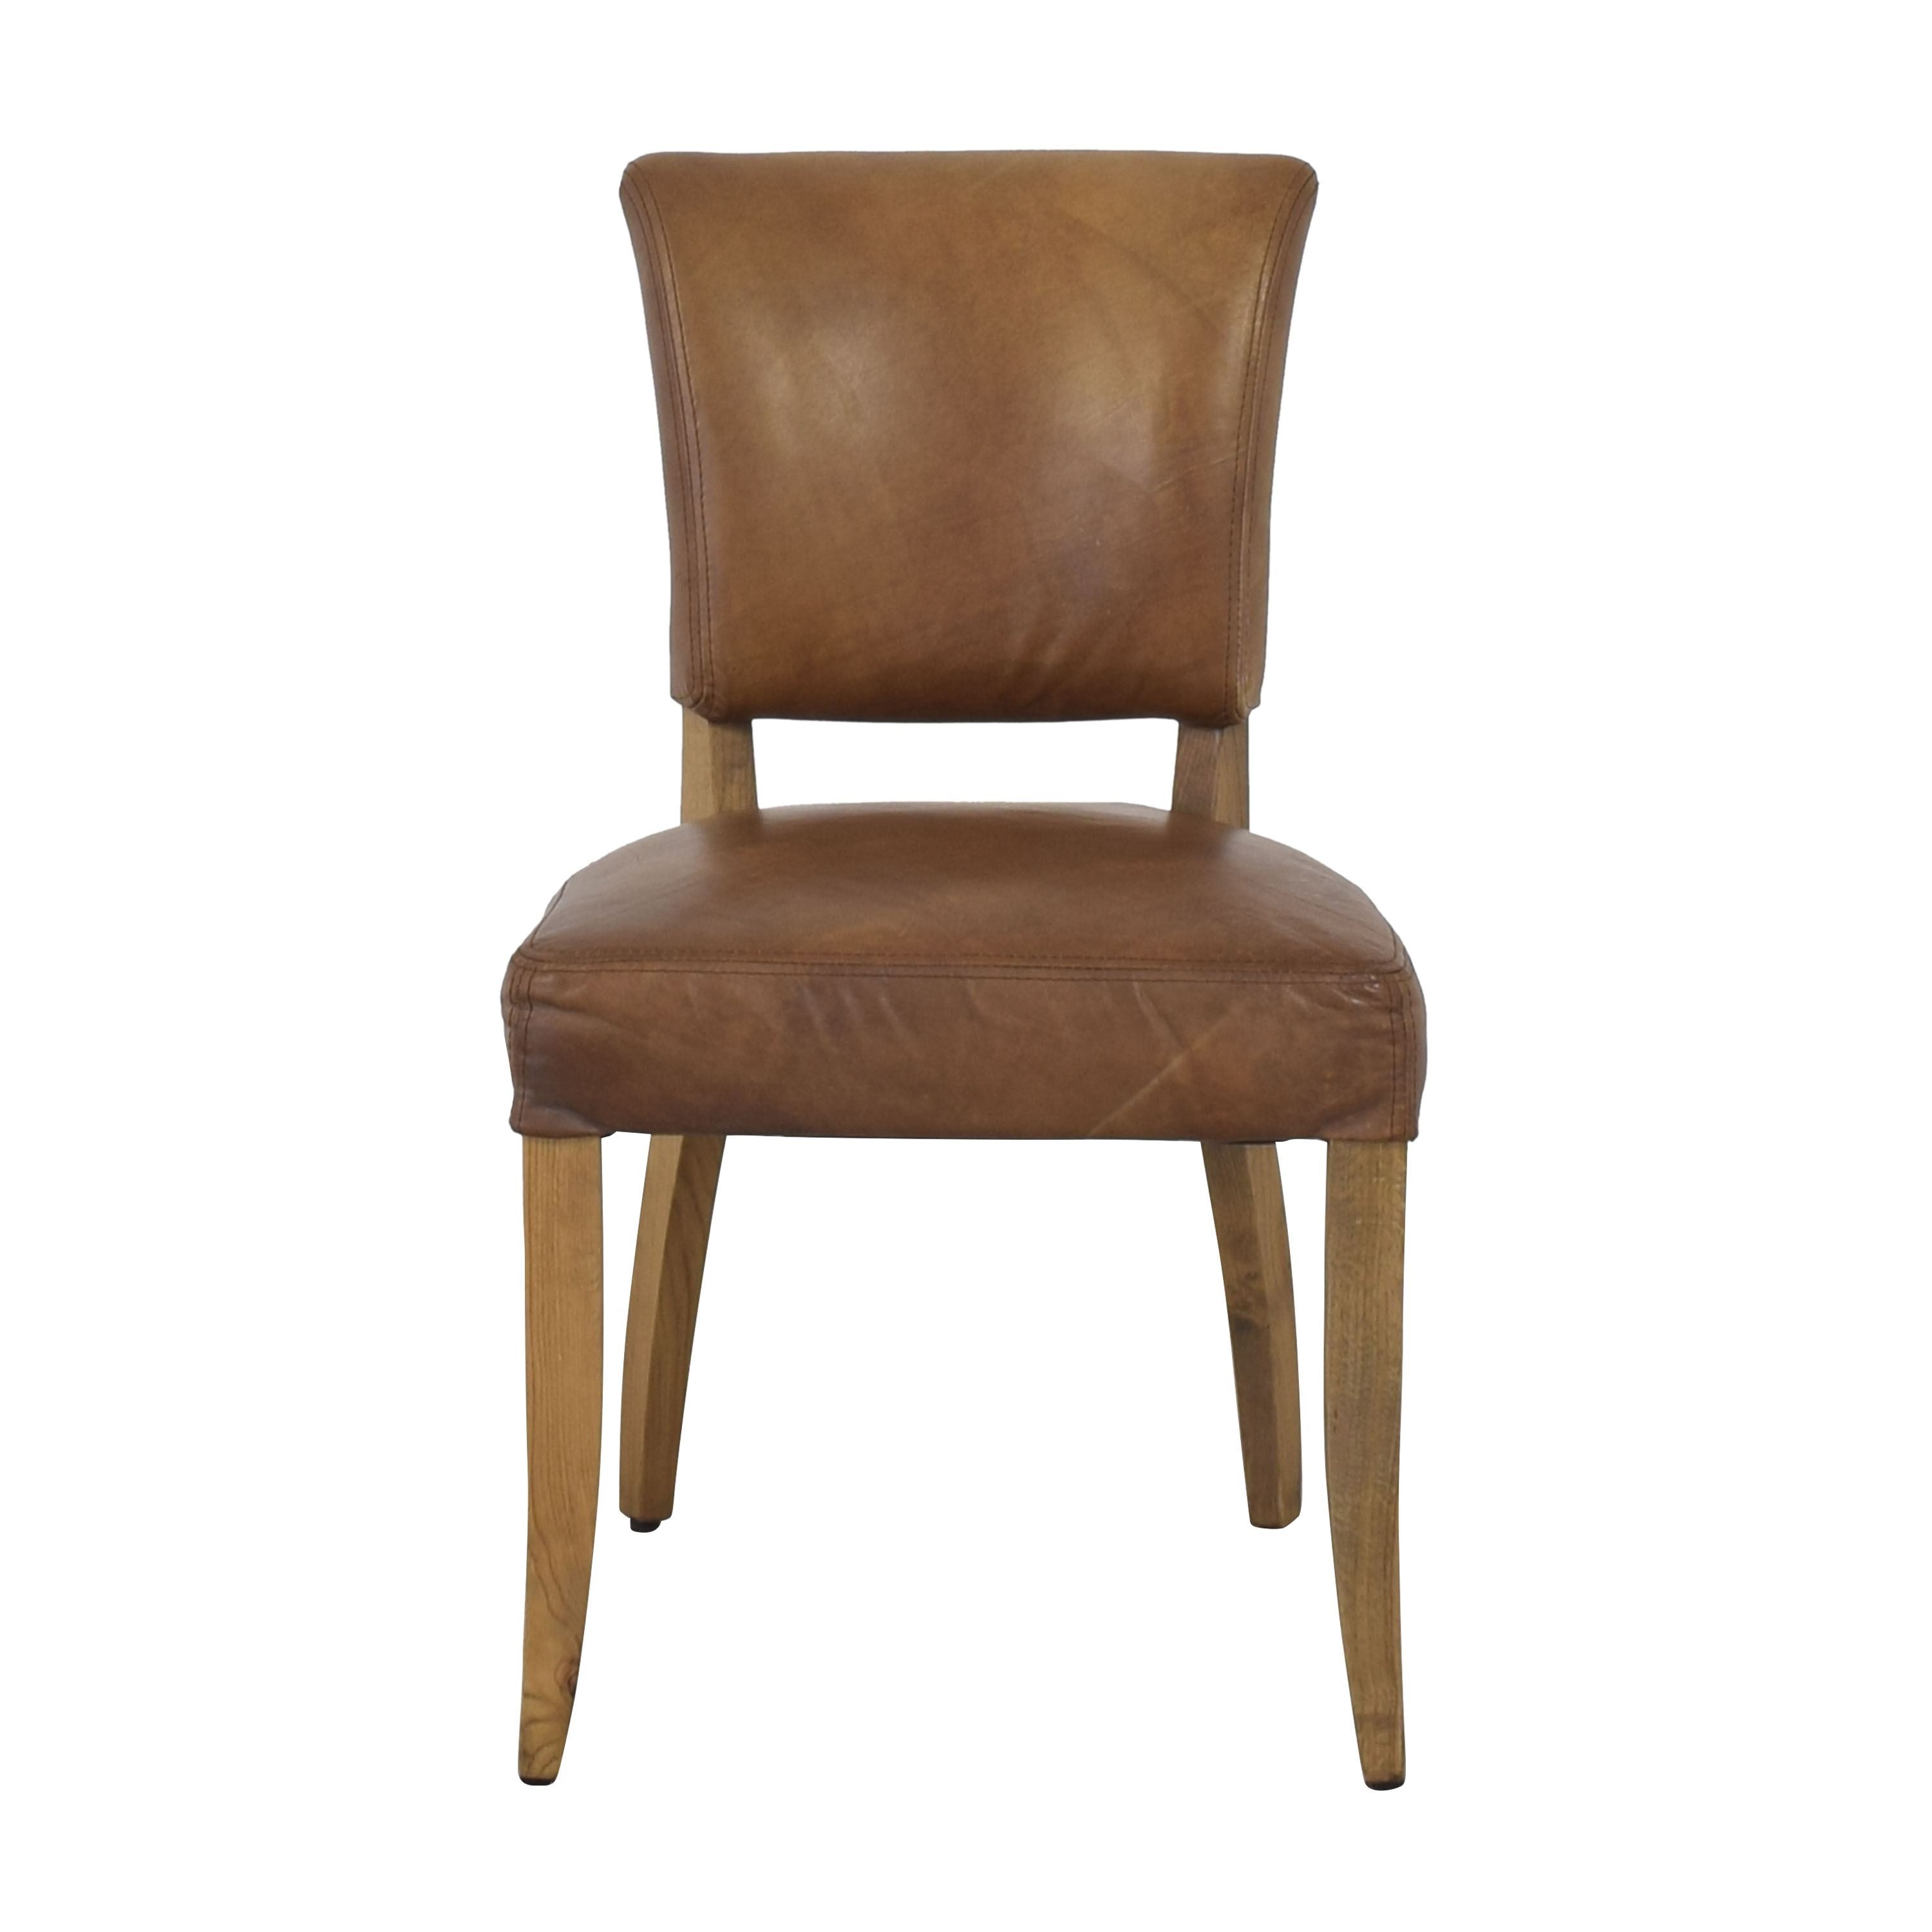 Restoration Hardware Adele Leather Side Chair / Chairs